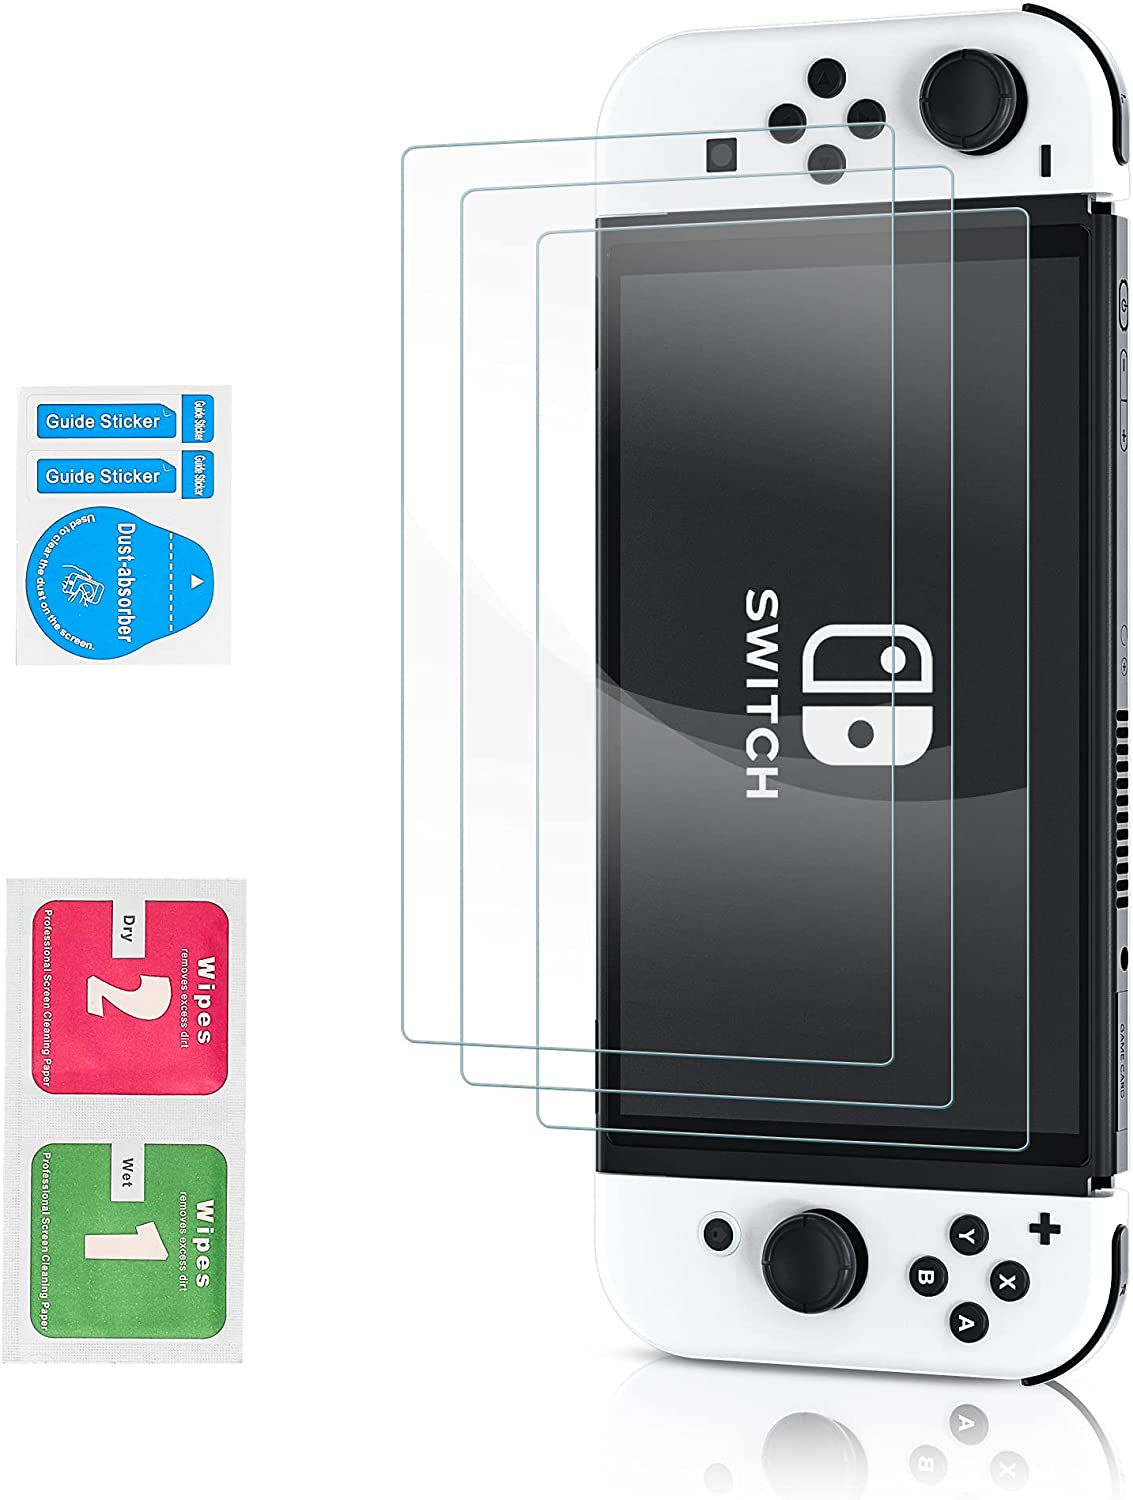 LASTYAL 3Pcs Screen Proctor Compatible 2021 model OLED with Switch Nintendo New product! New type